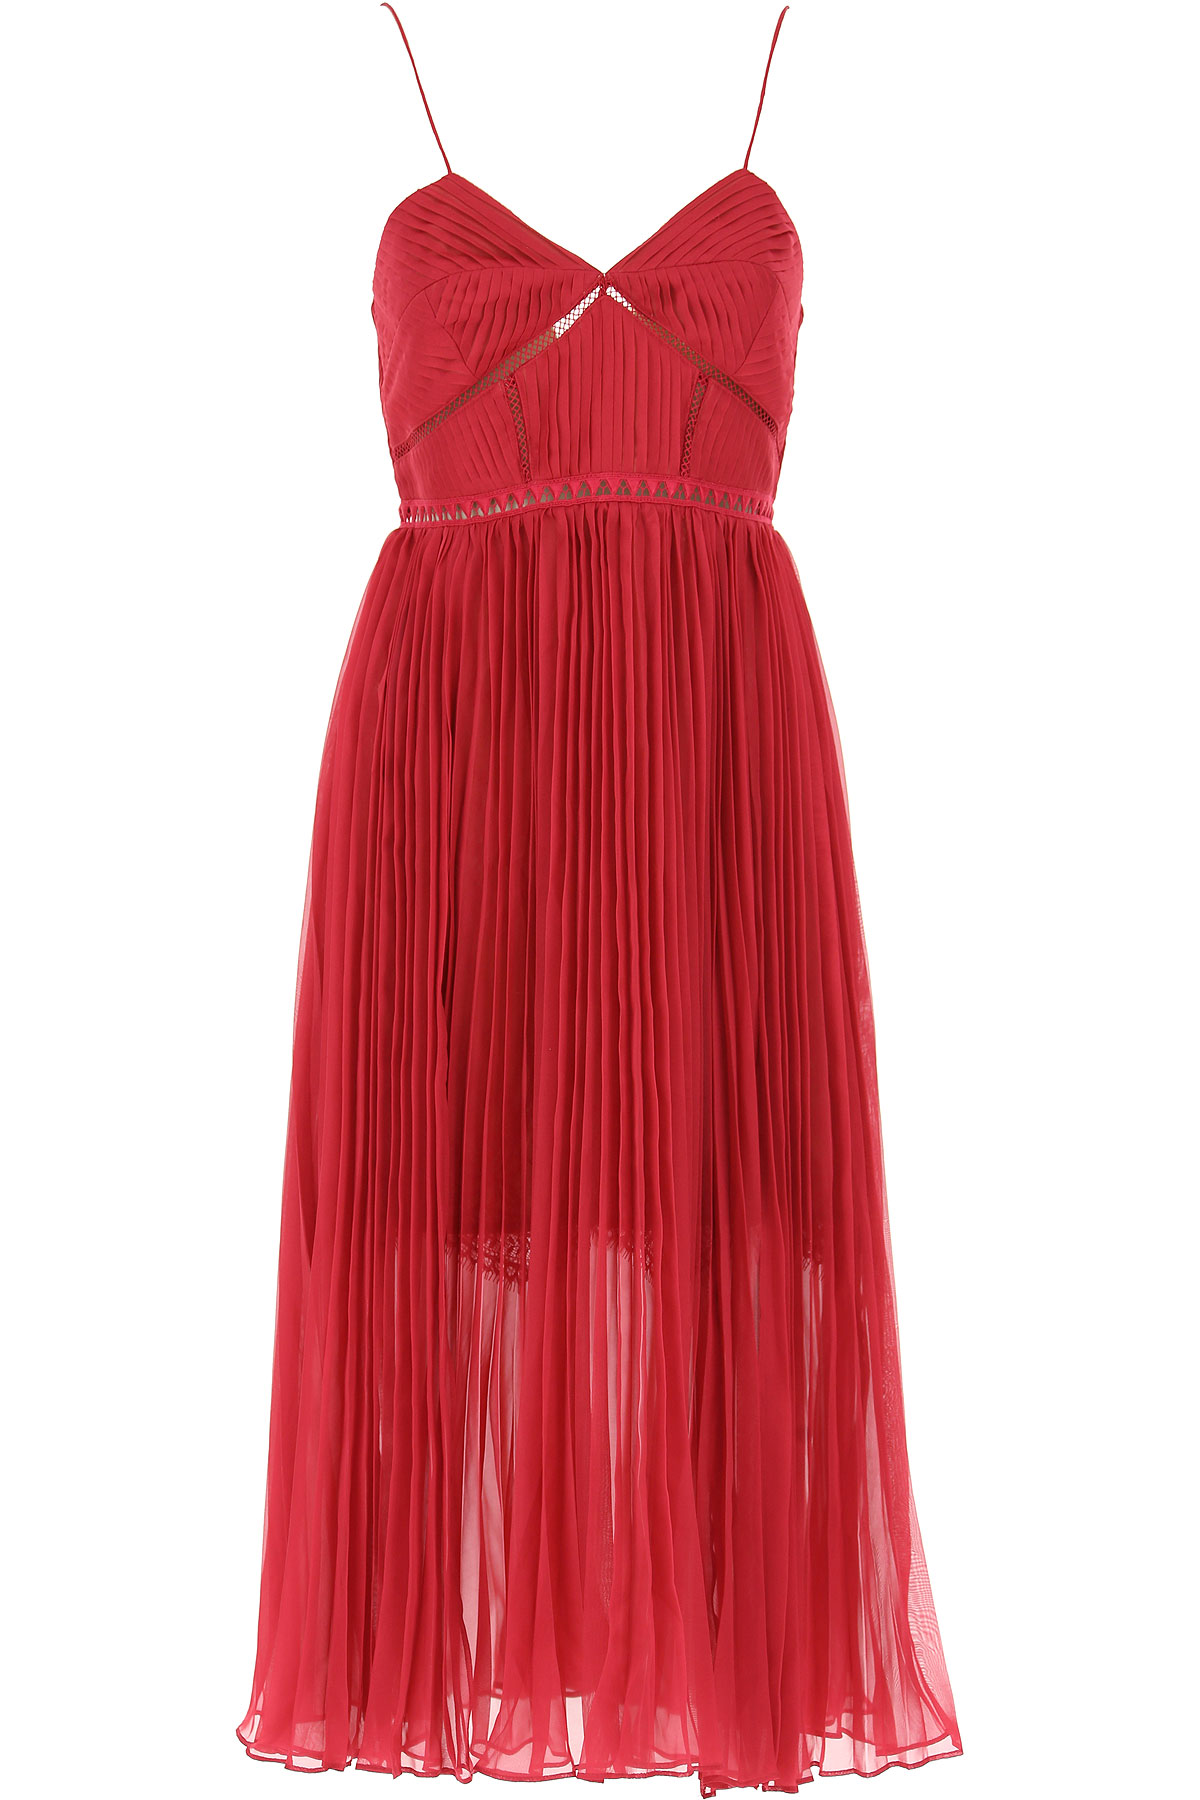 Image of Self-portrait Dress for Women, Evening Cocktail Party, fuxia, polyester, 2017, UK 8 - US 6 - EU 40 UK 10 - US 8 - EU 42 UK 12 - US 10 - EU 44